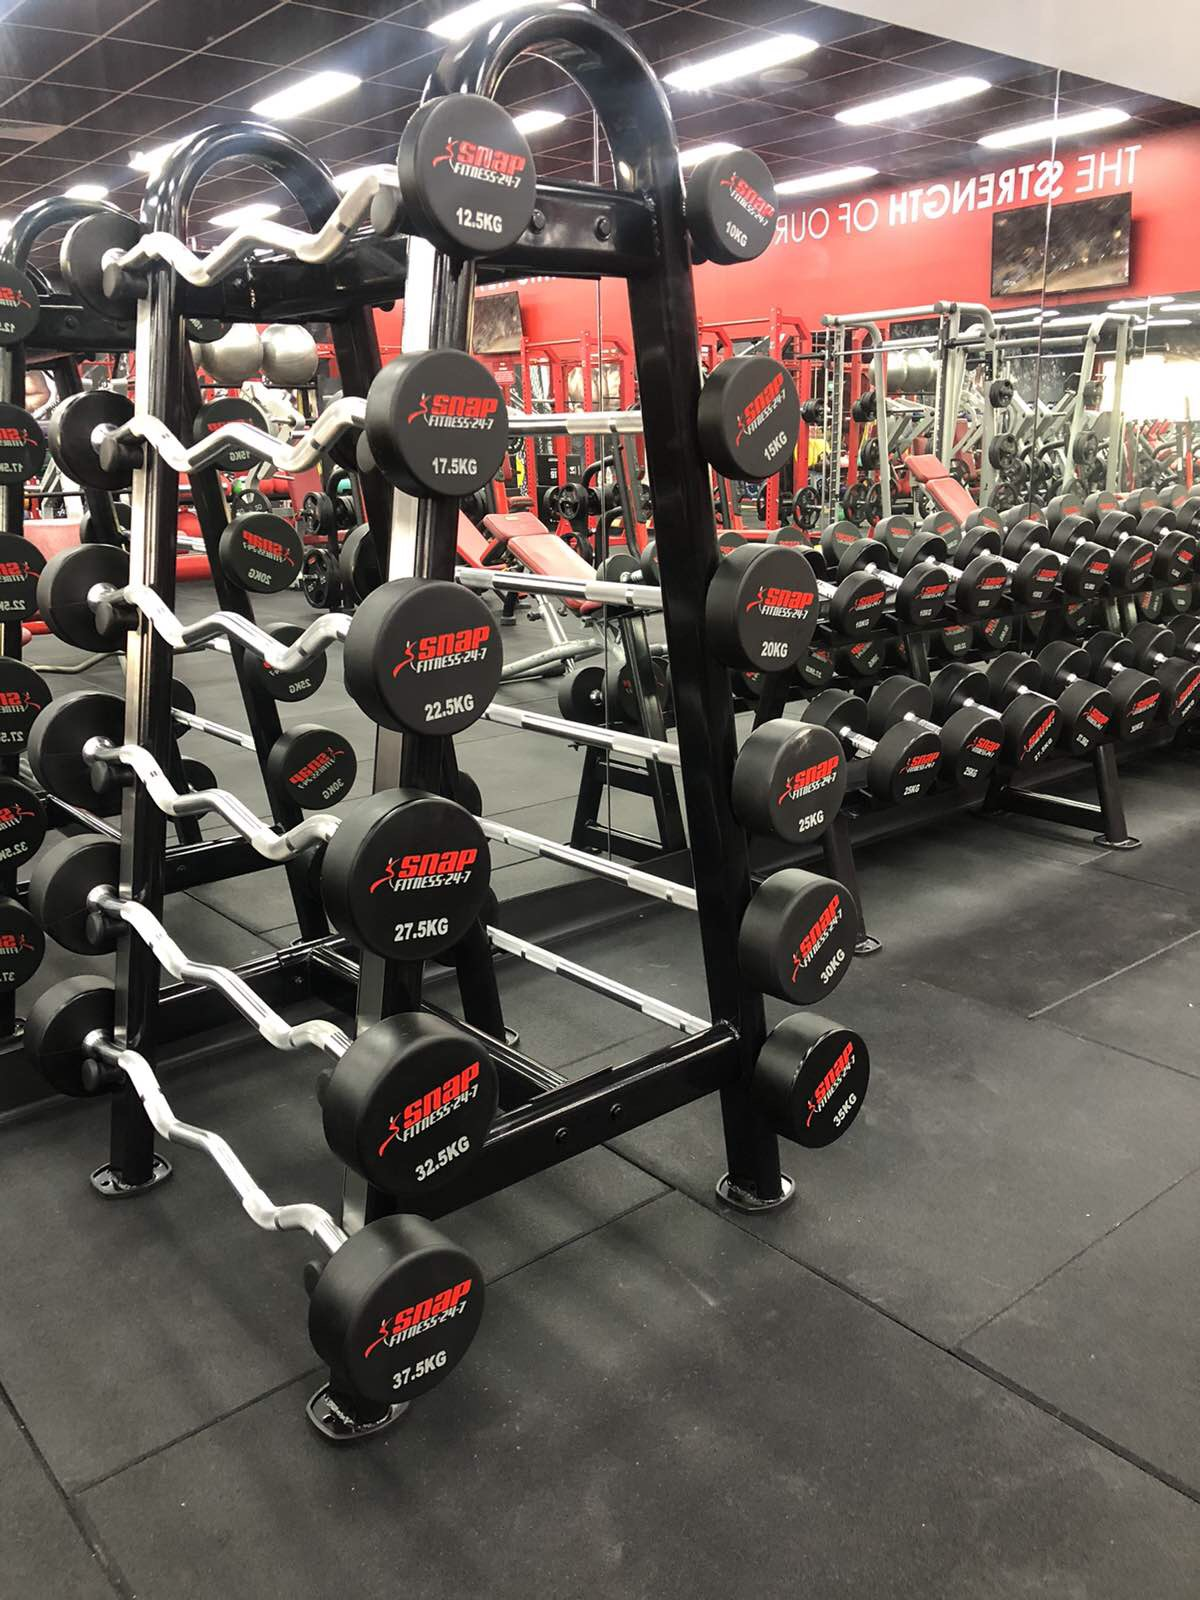 Snap Fitness Free Trial : fitness, trial, TRIAL, Beaudesert, Fitness, Australia